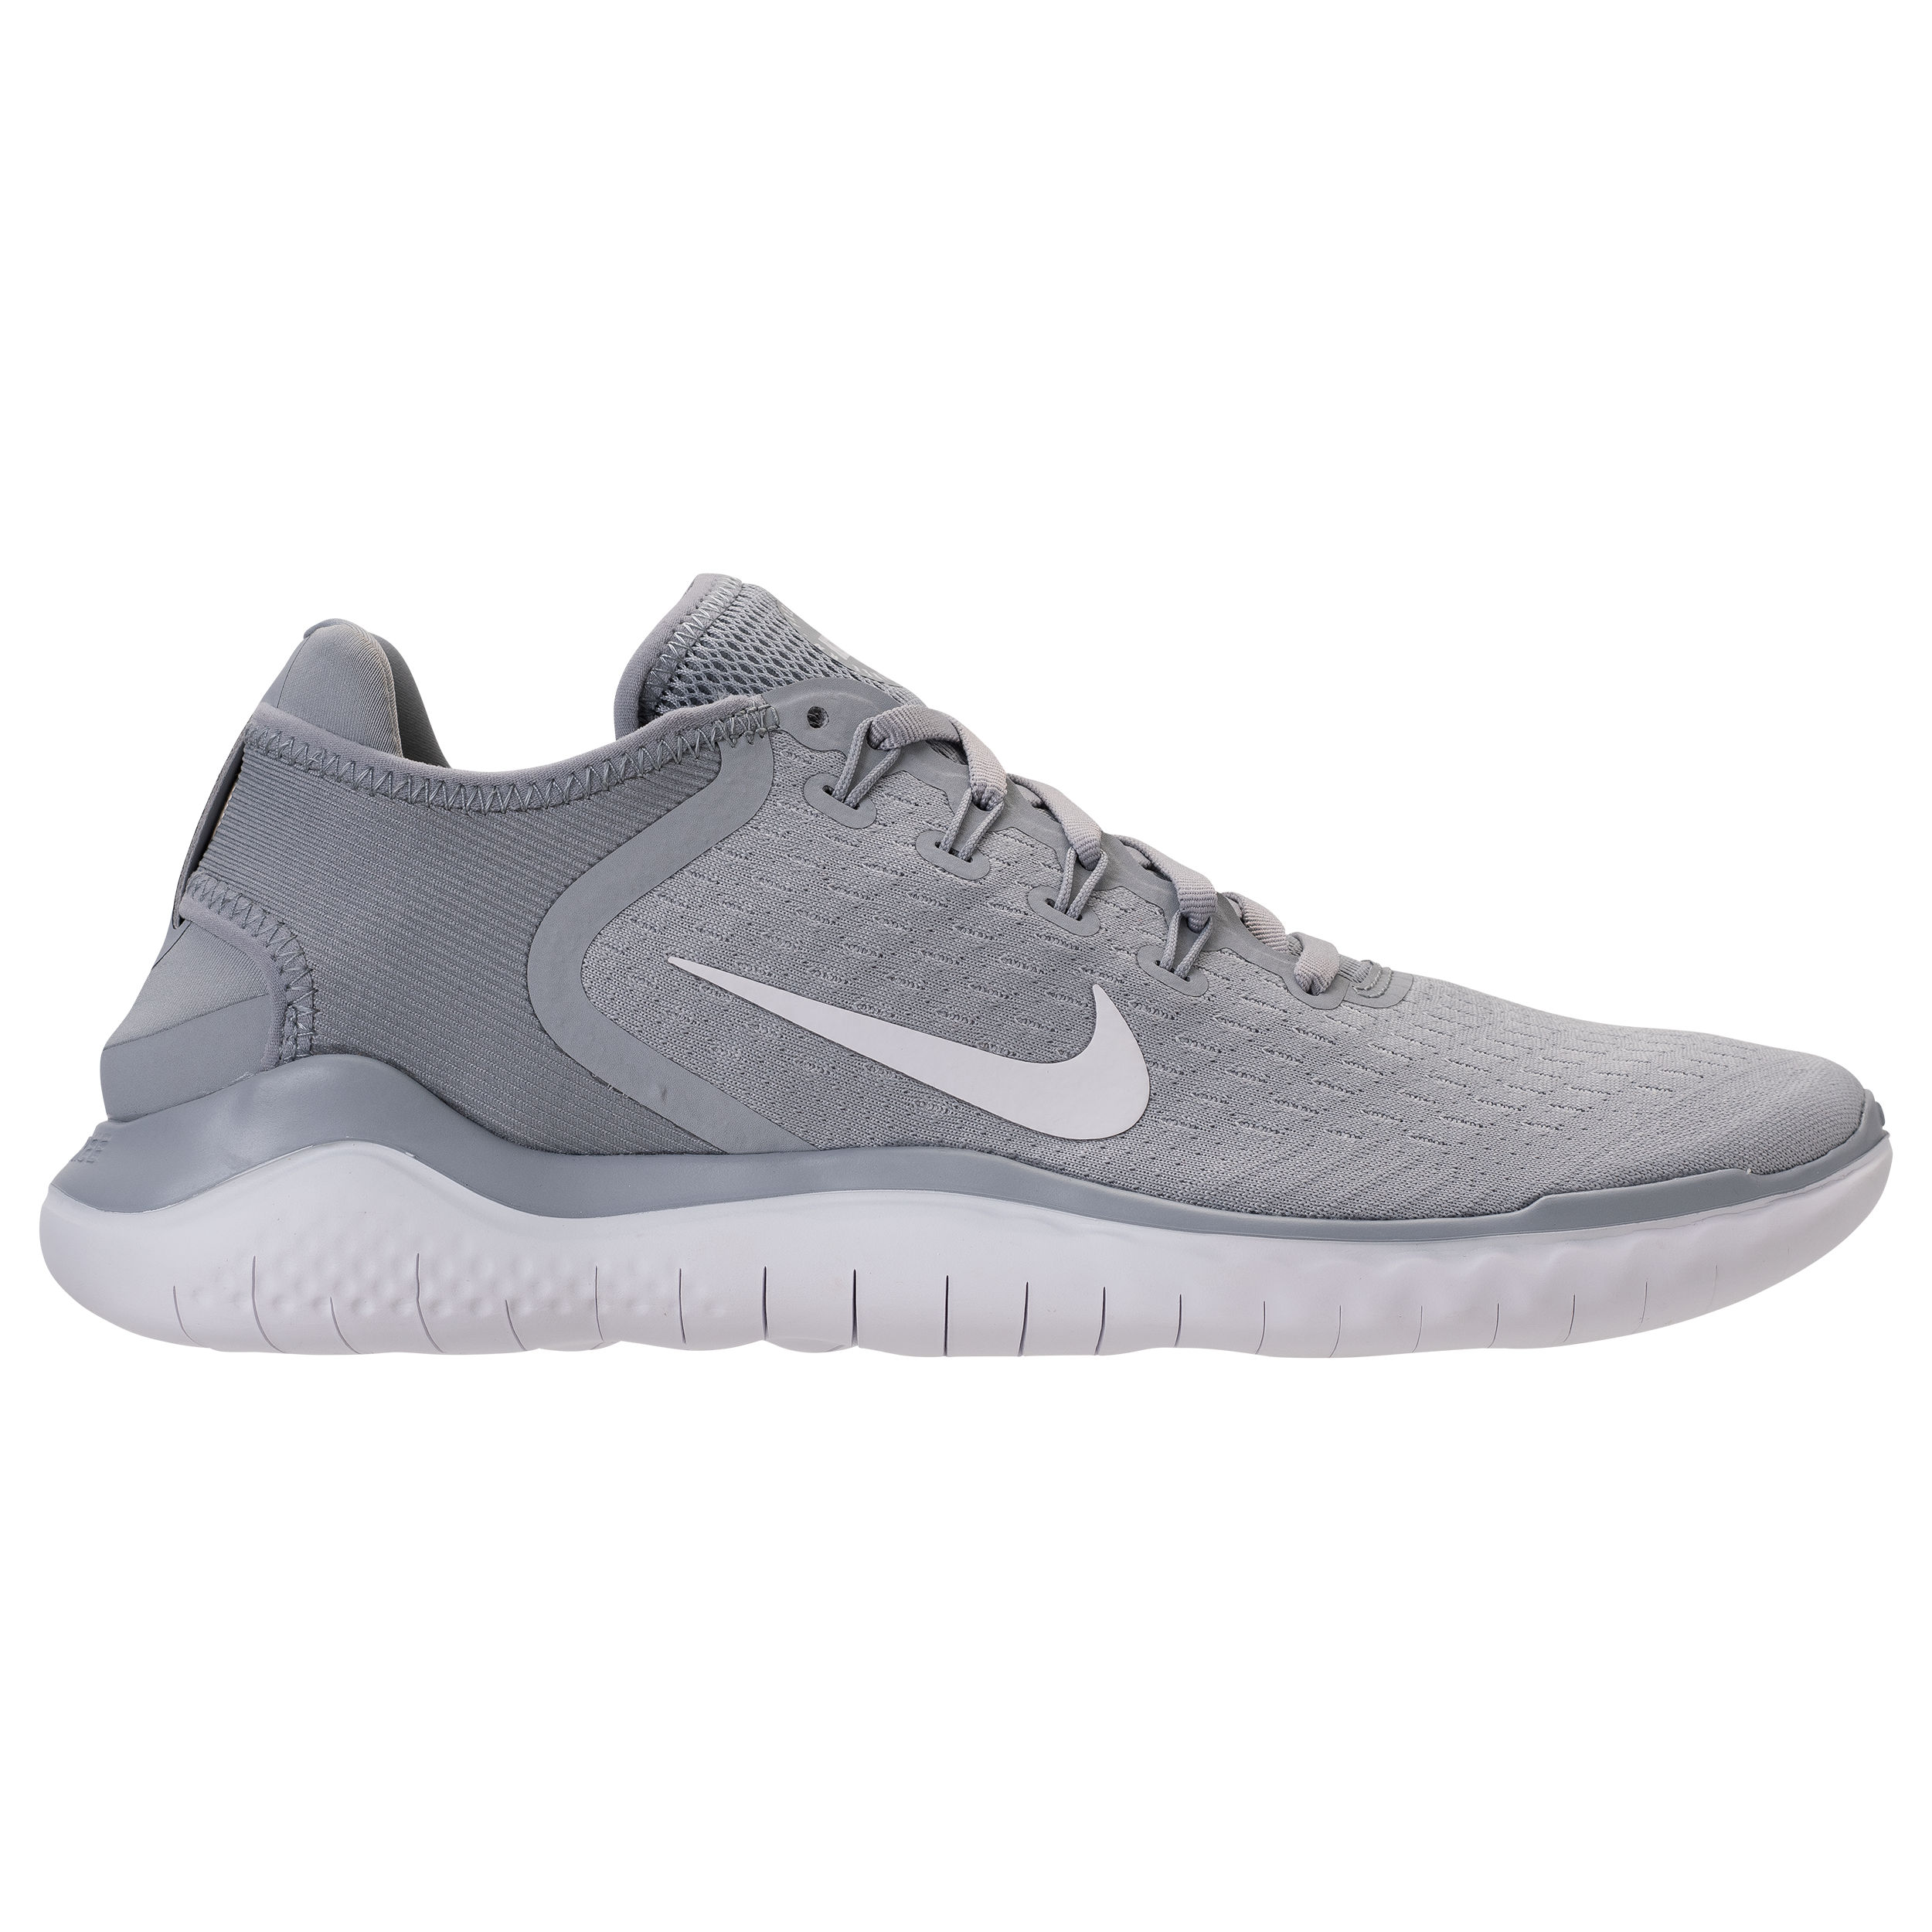 The Nike Free RN 2018 Debuts in Mid-February, with Flyknit Version ...